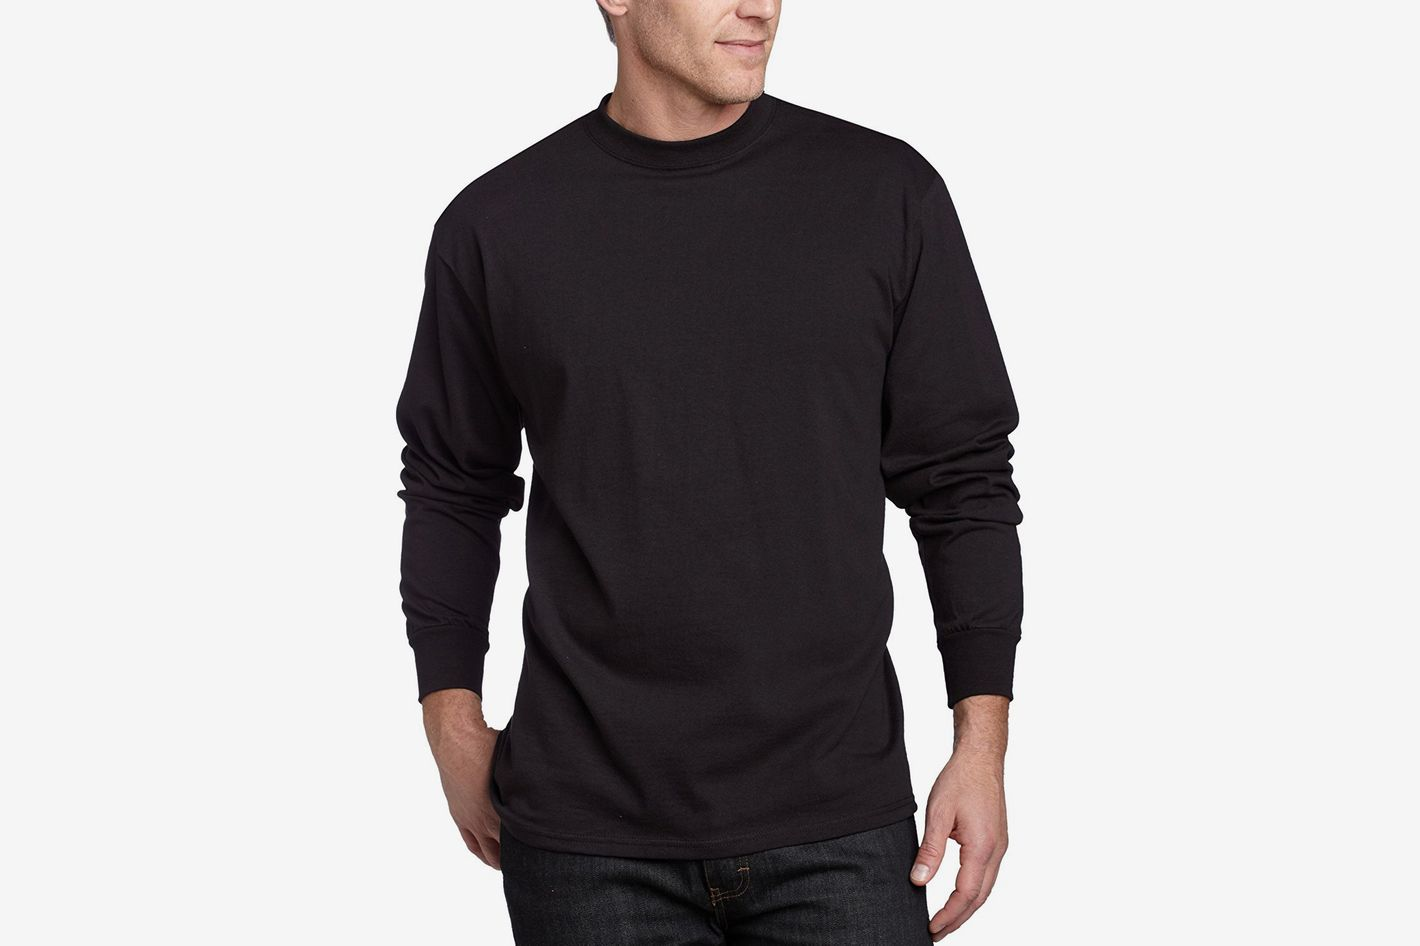 MJ Soffe Men s Long-Sleeve Cotton T-Shirt fa999a0b8acc